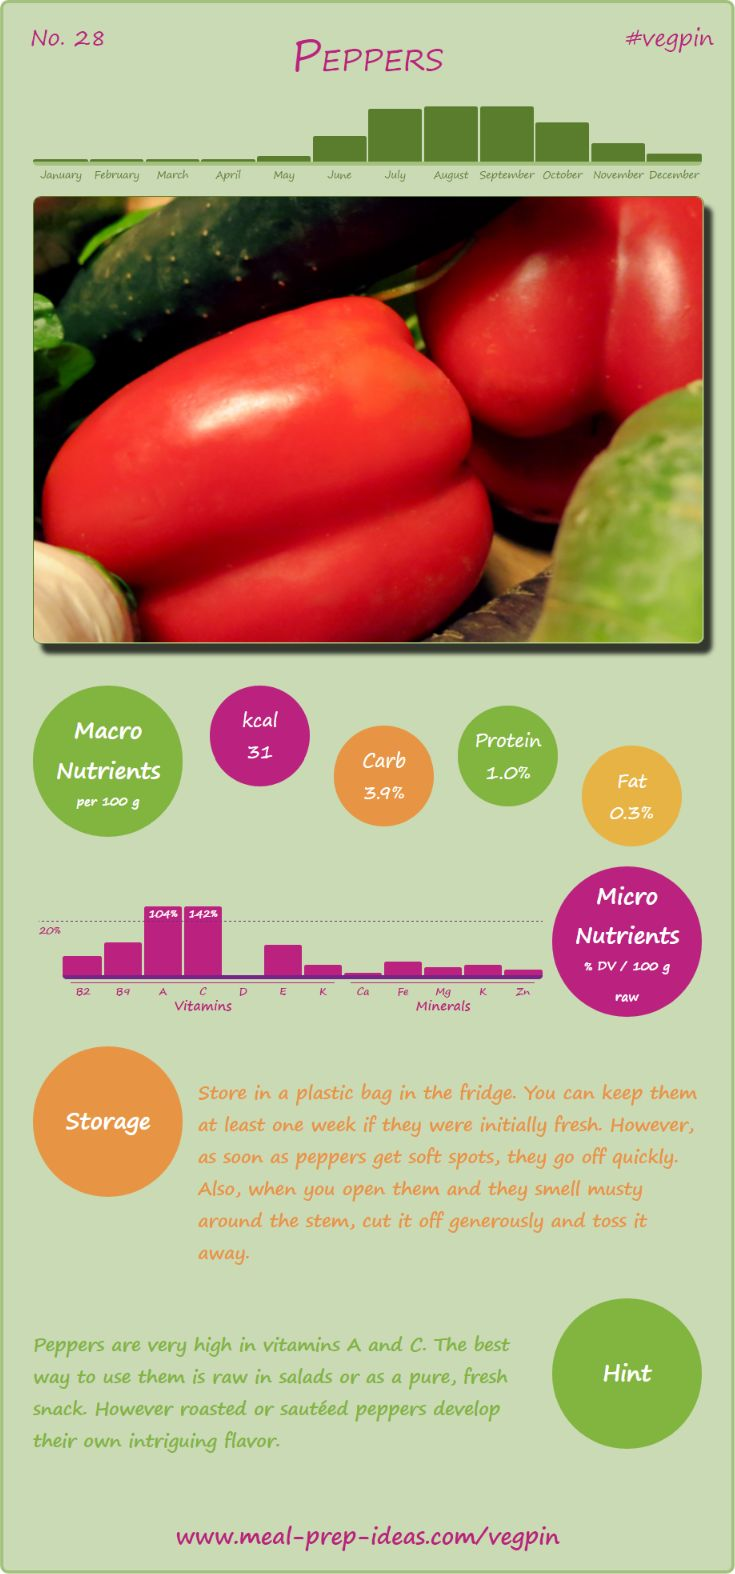 #vegpin from #mealprepideas: Infographic for peppers with seasonal information, #nutrition values for potentially critical nutrients as well as tips for storage and preparation. We present one seasonal fruit or vegetable each week during 2017! Eat #vegan and #healthy with meal-prep-ideas.com.